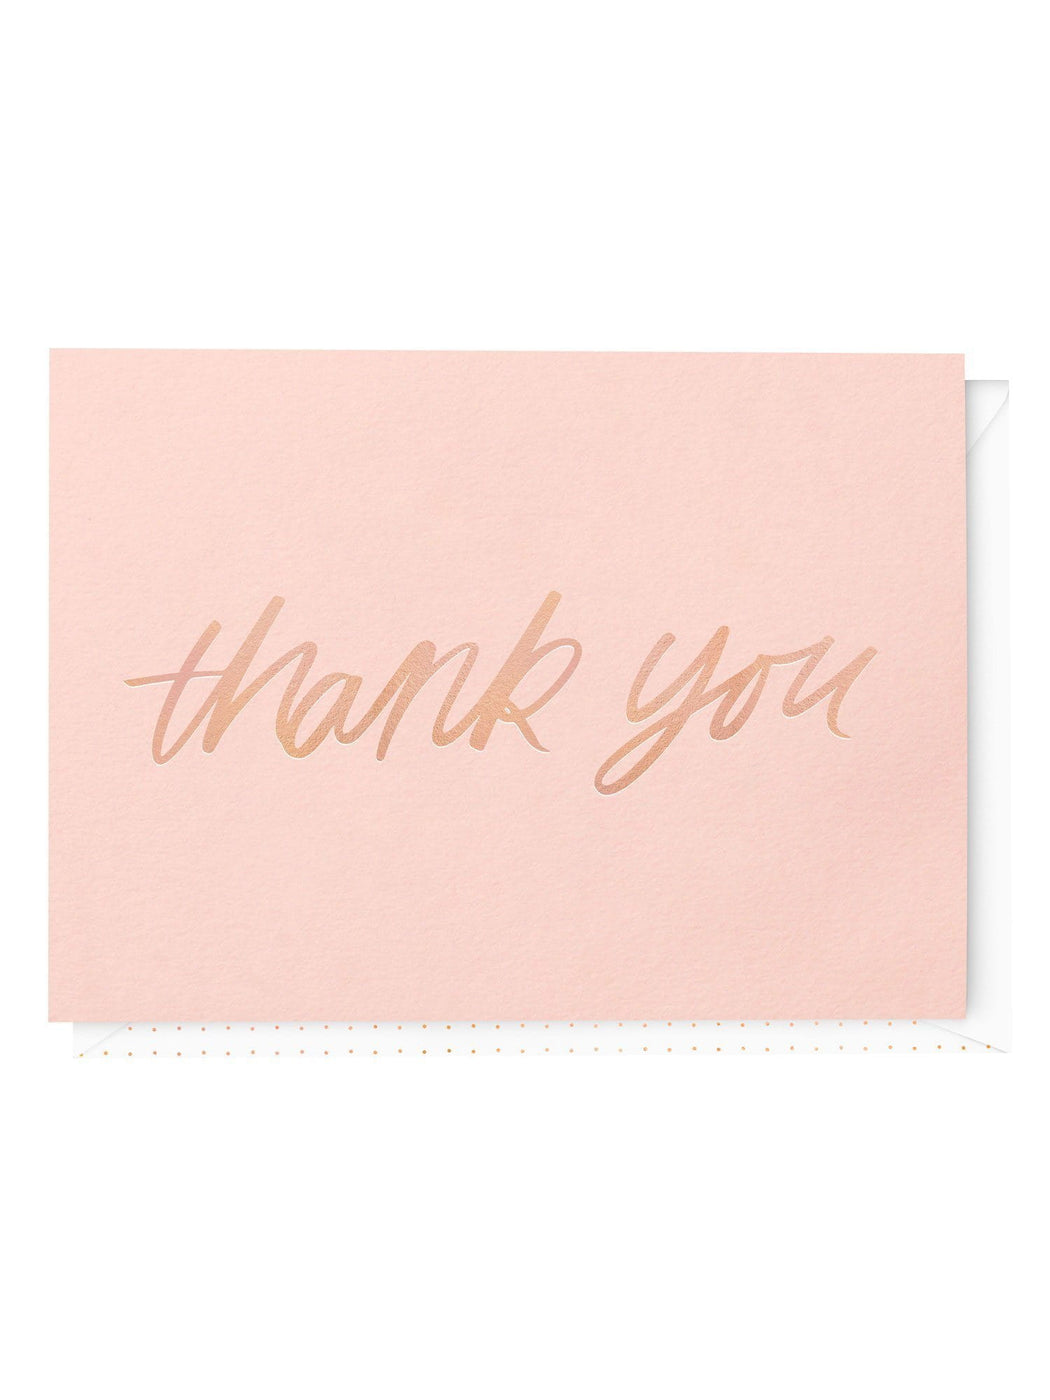 A Fancy Thank You Greeting Card